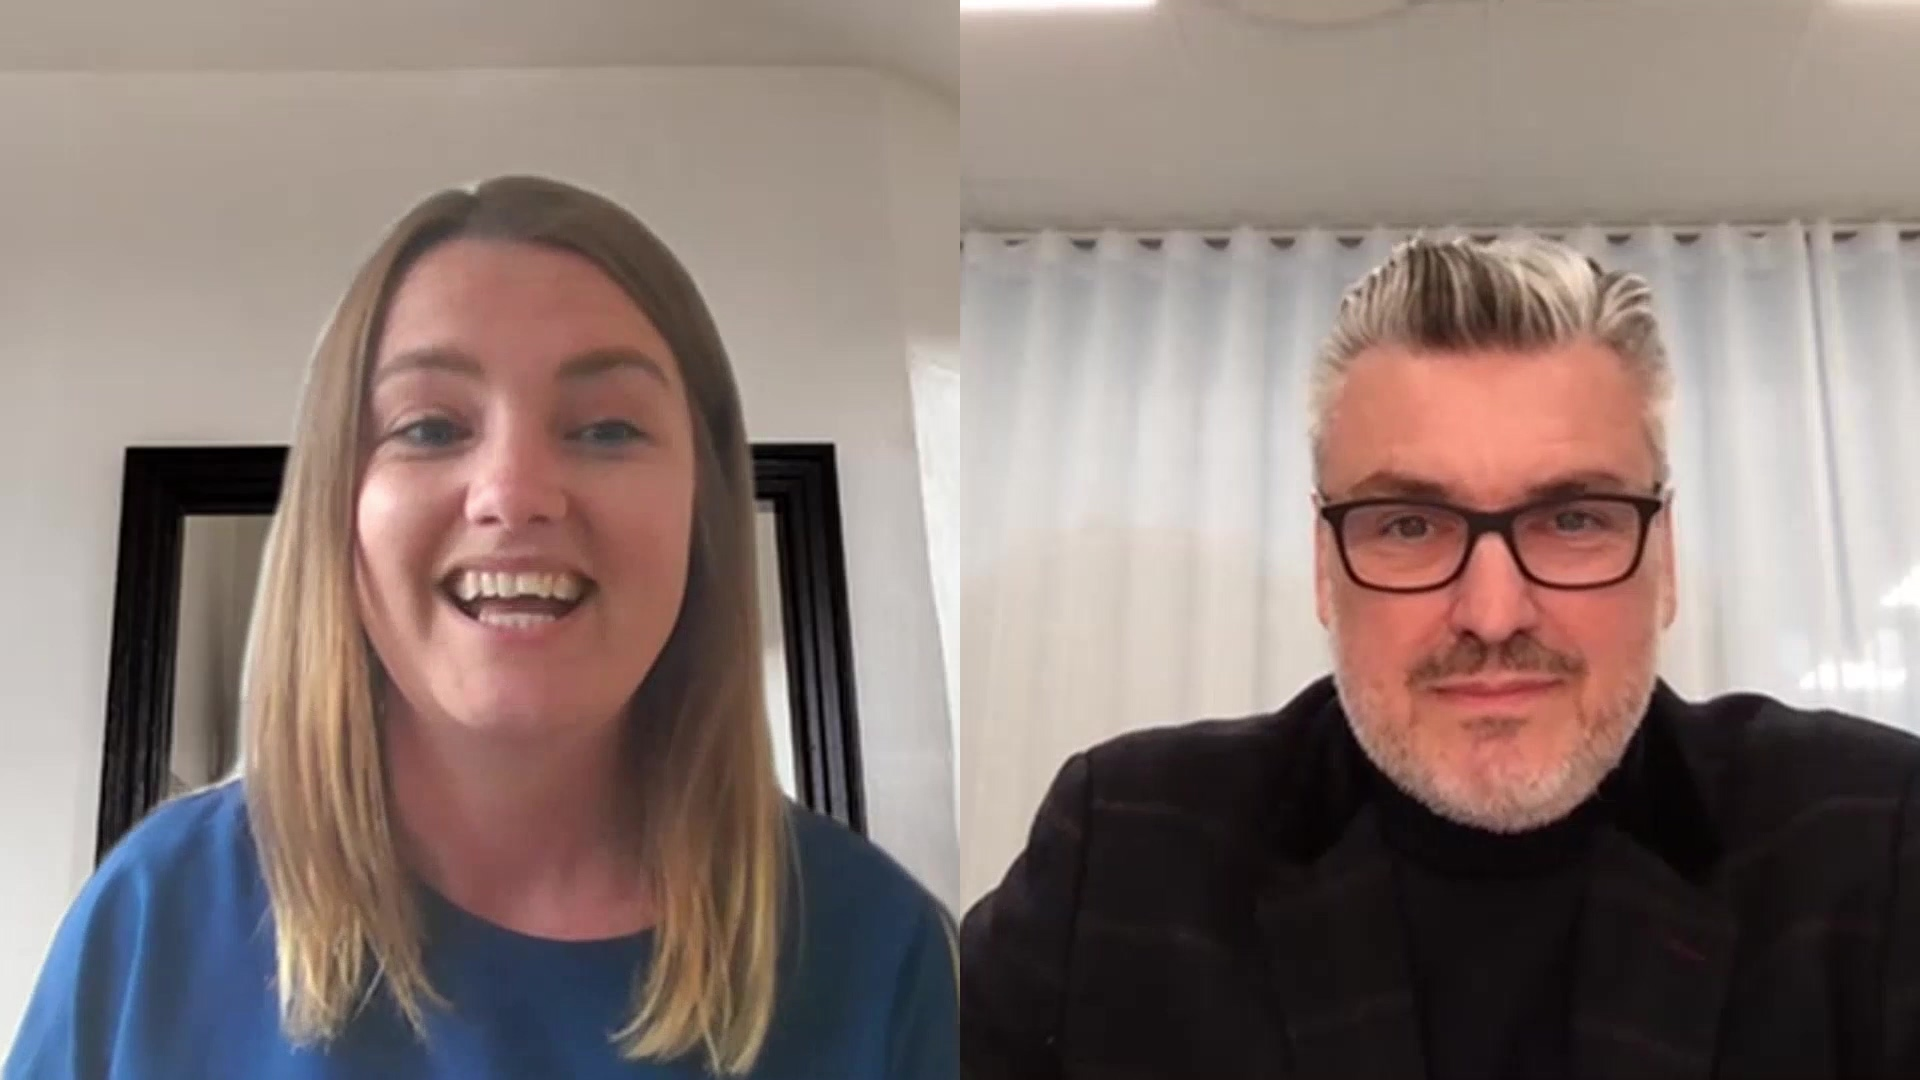 Final - Quickfire Interview - CAM - Improve supply chain visibility - to increase sustainability and